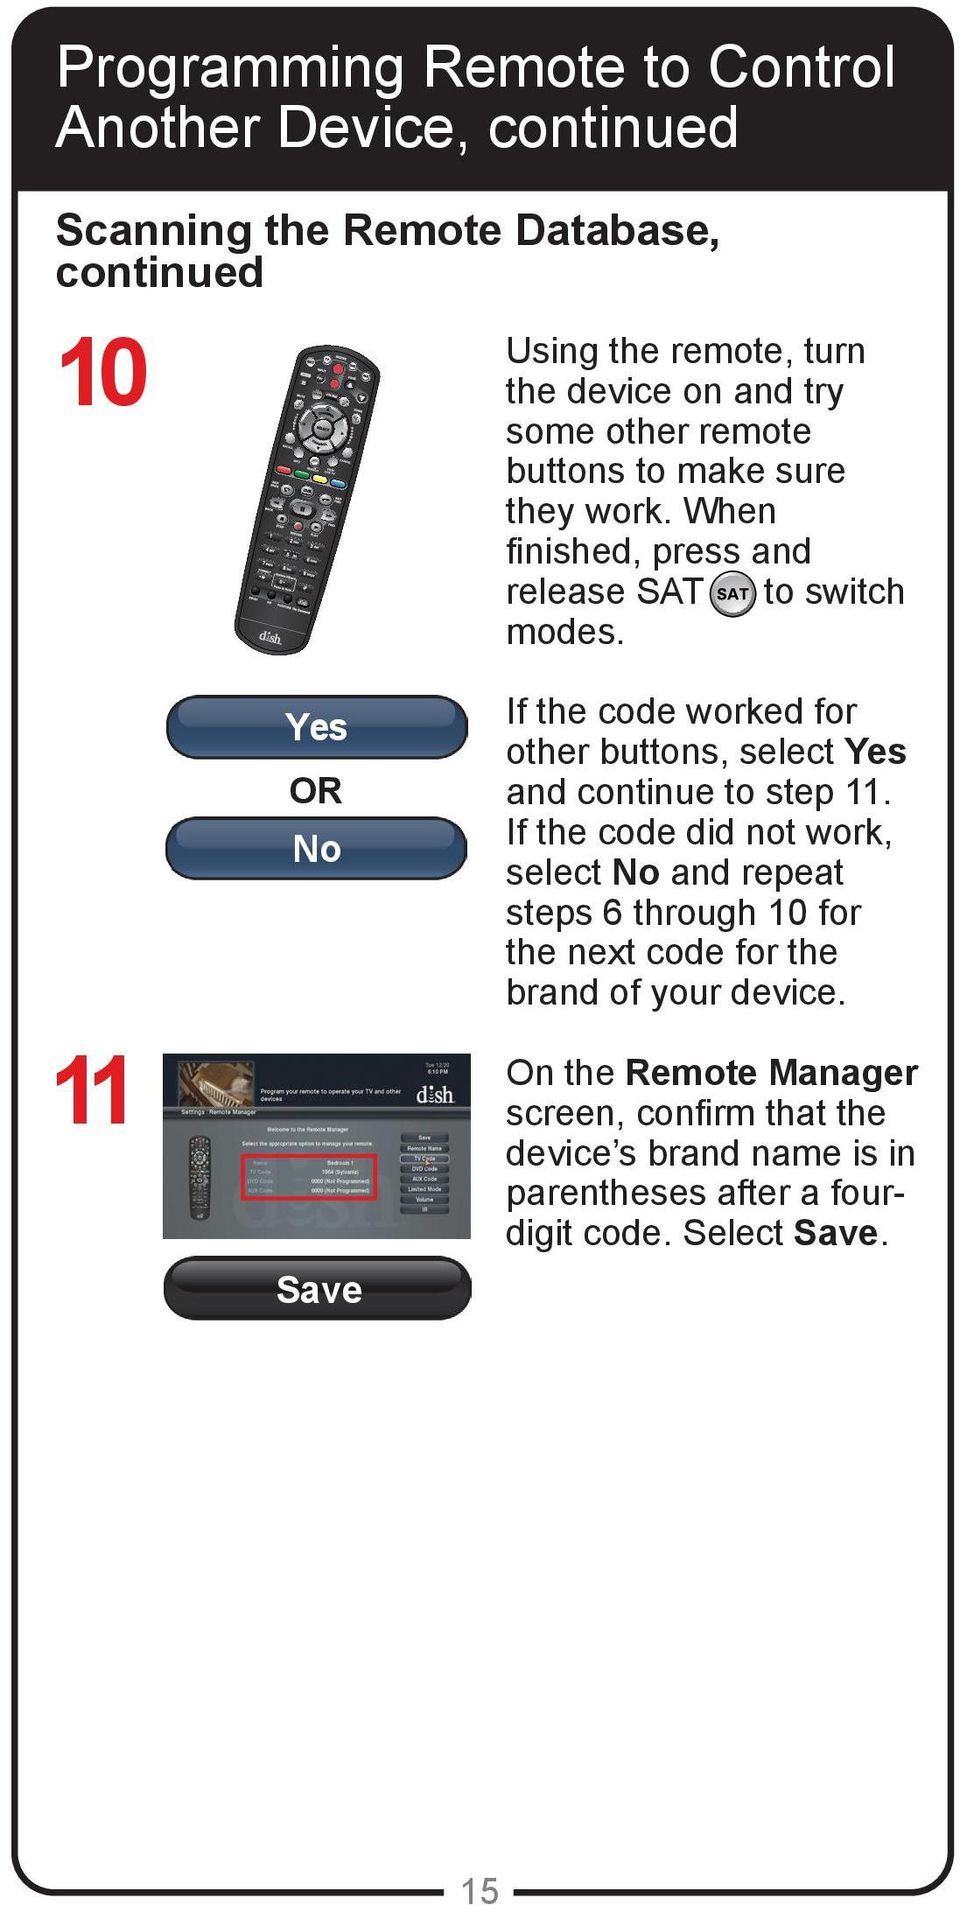 11 Yes OR No Save If the code worked for other buttons, select Yes and continue to step 11.